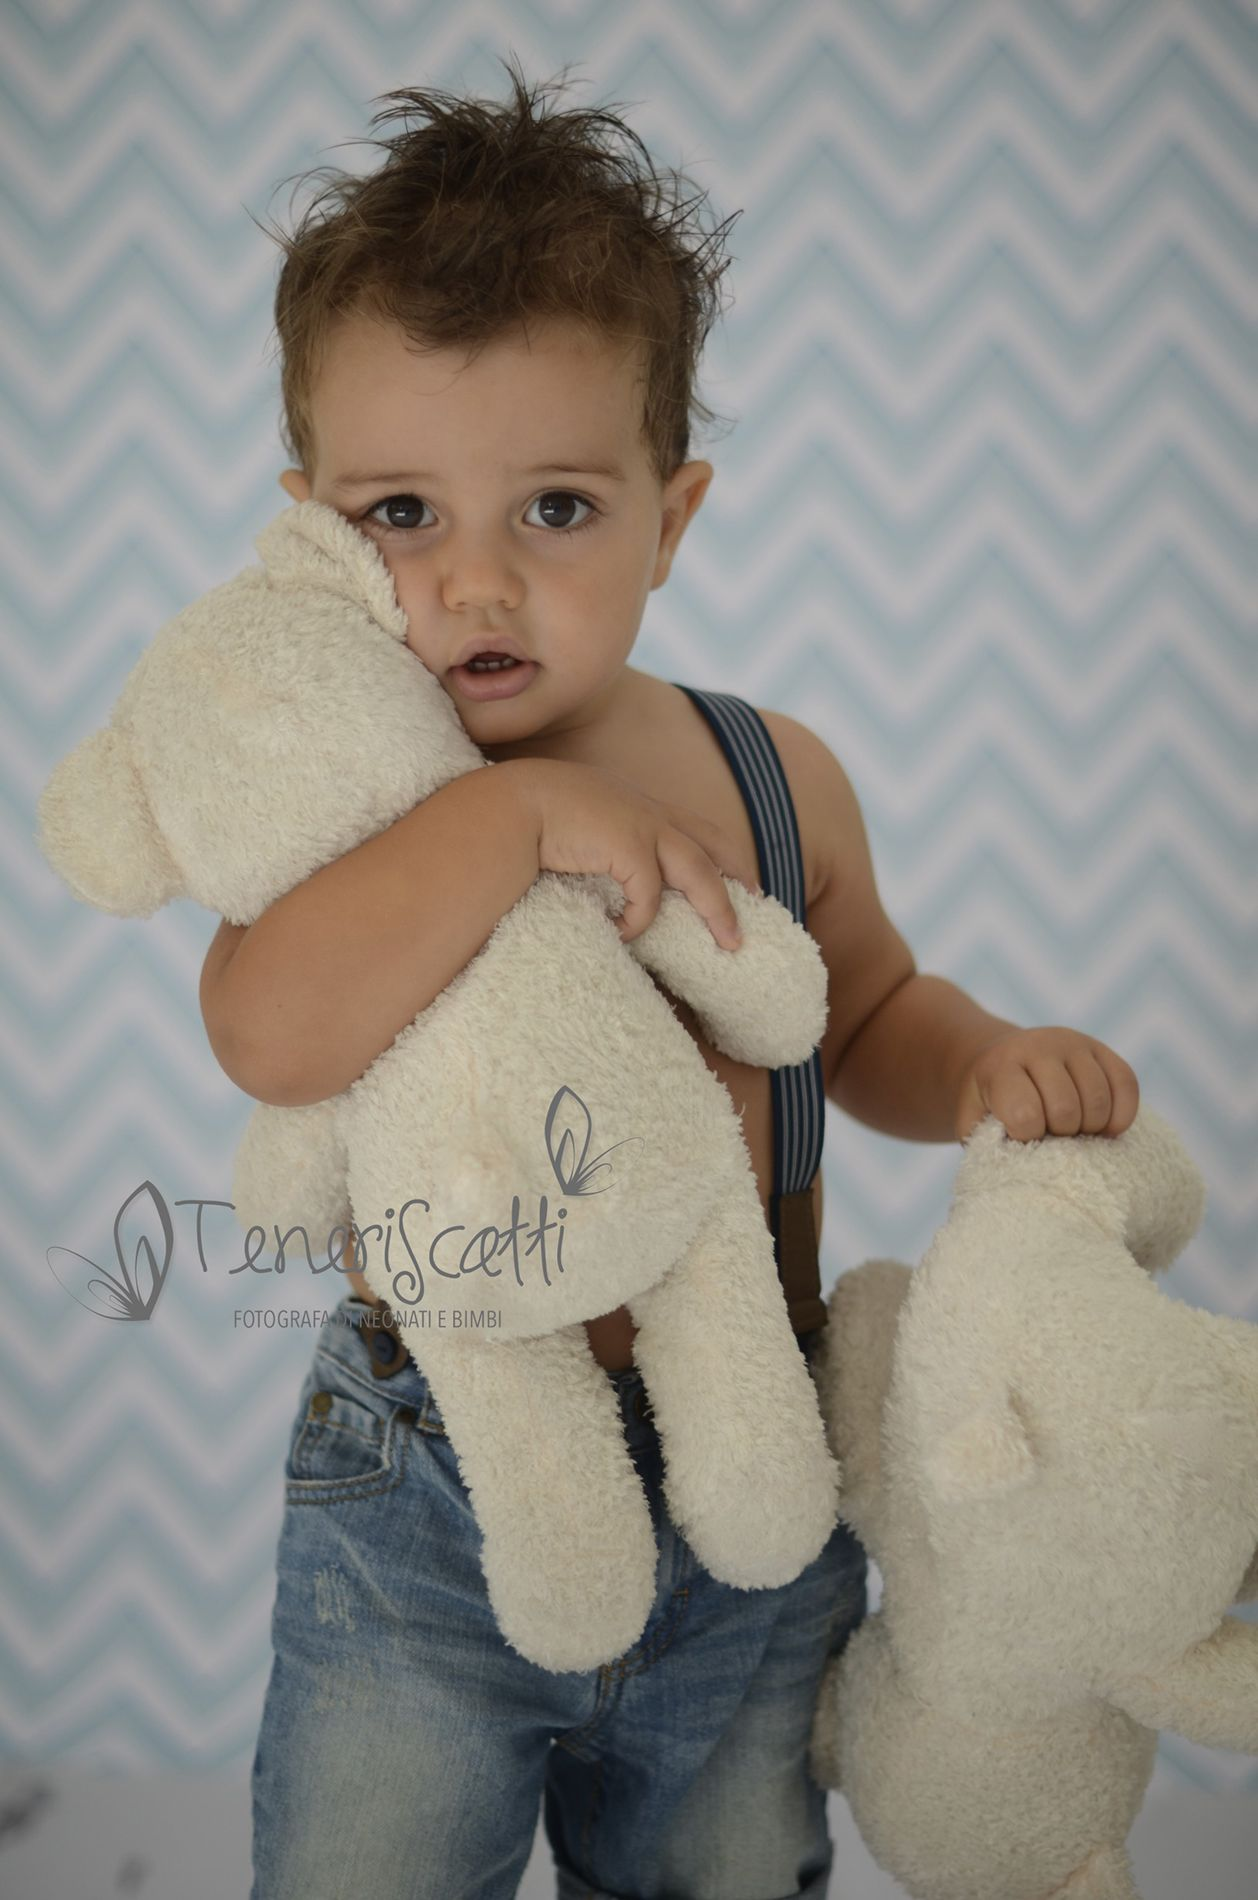 20 months #kids #photography #baby